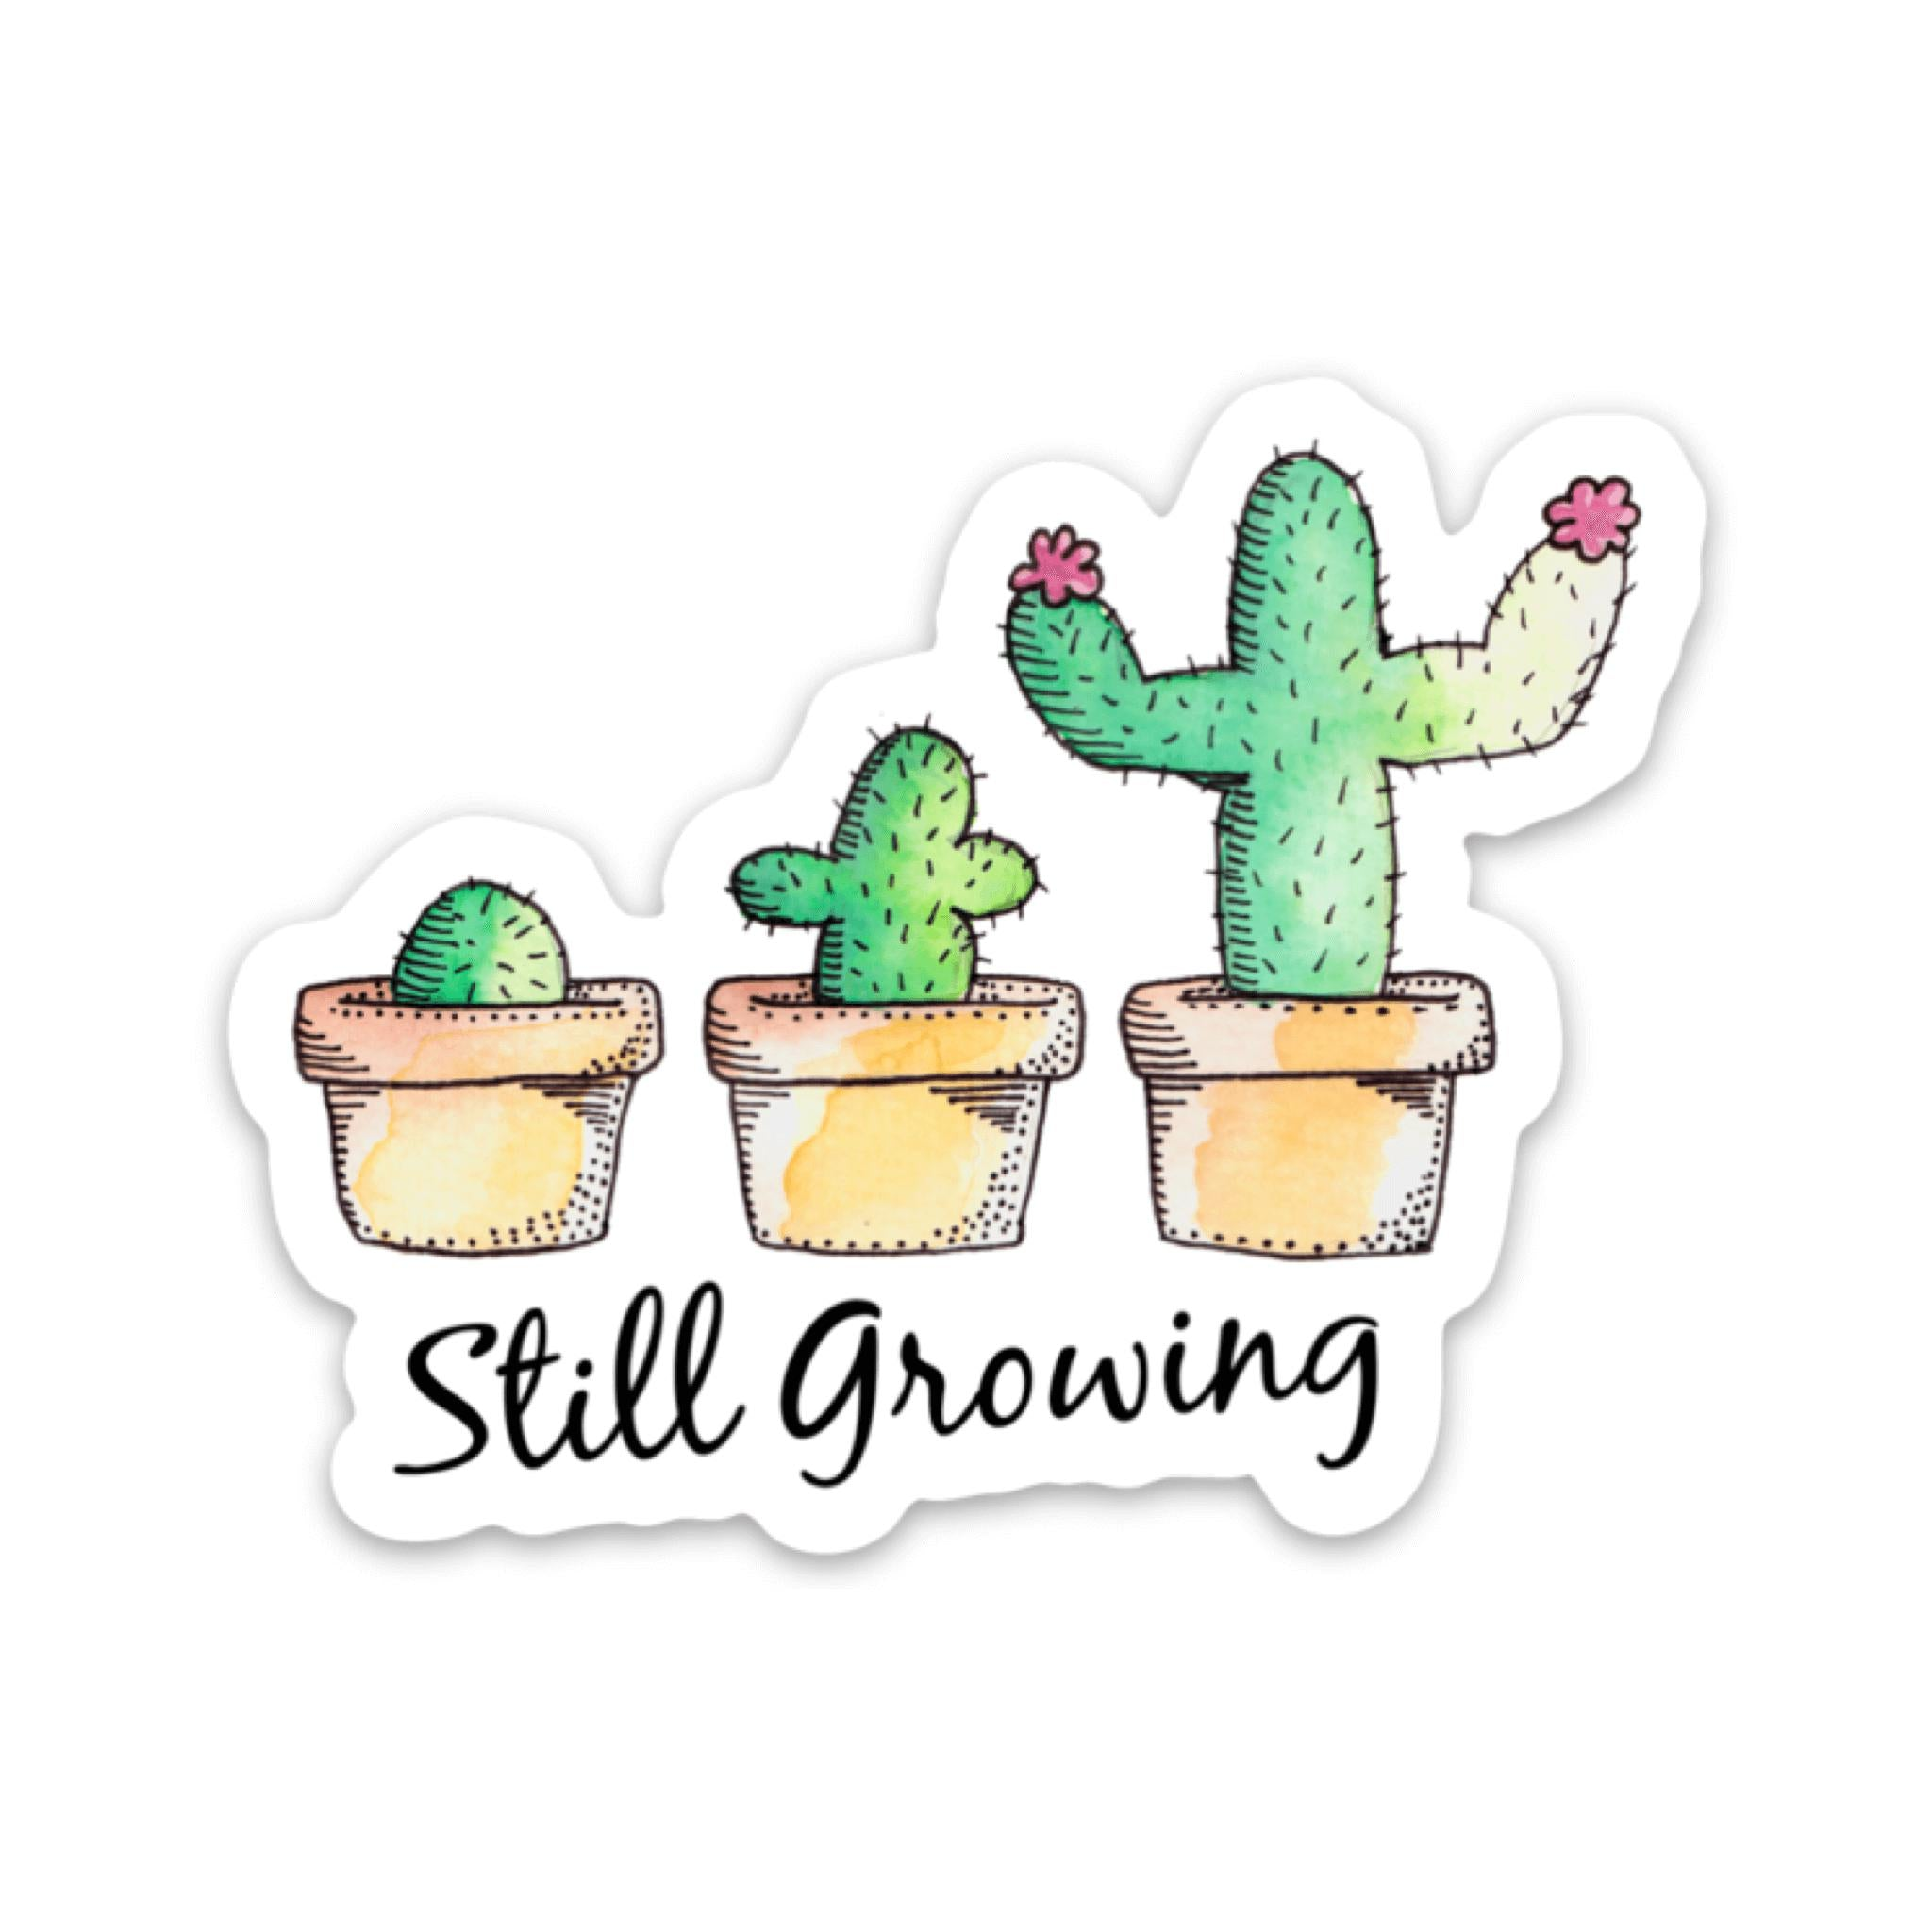 Still Growing Sticker - Cactus